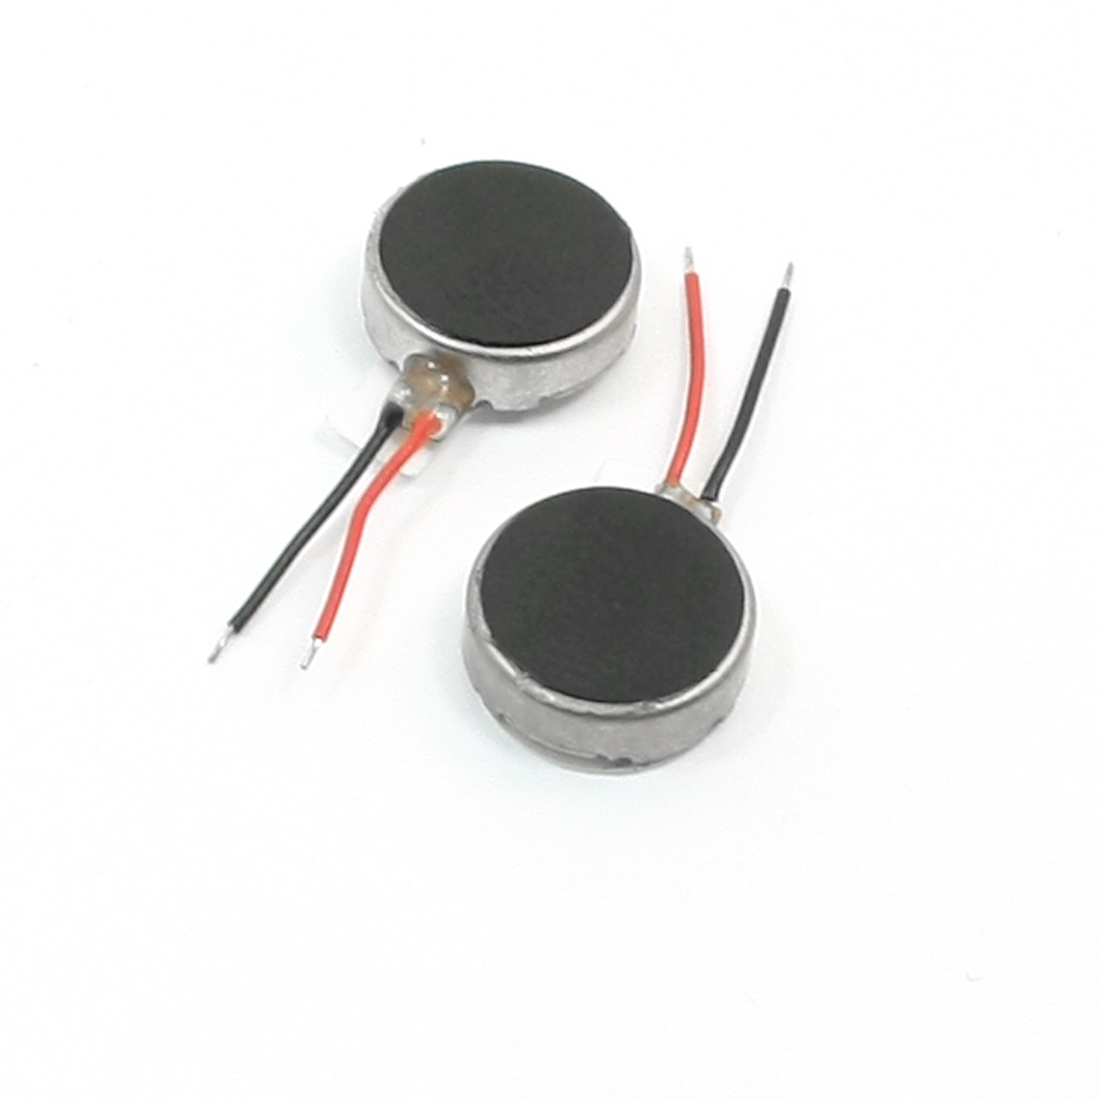 2Pcs-10x3mm-Two-Wired-Flat-Round-Vibration-Motor-13000RPM-for-Mobile-Phone